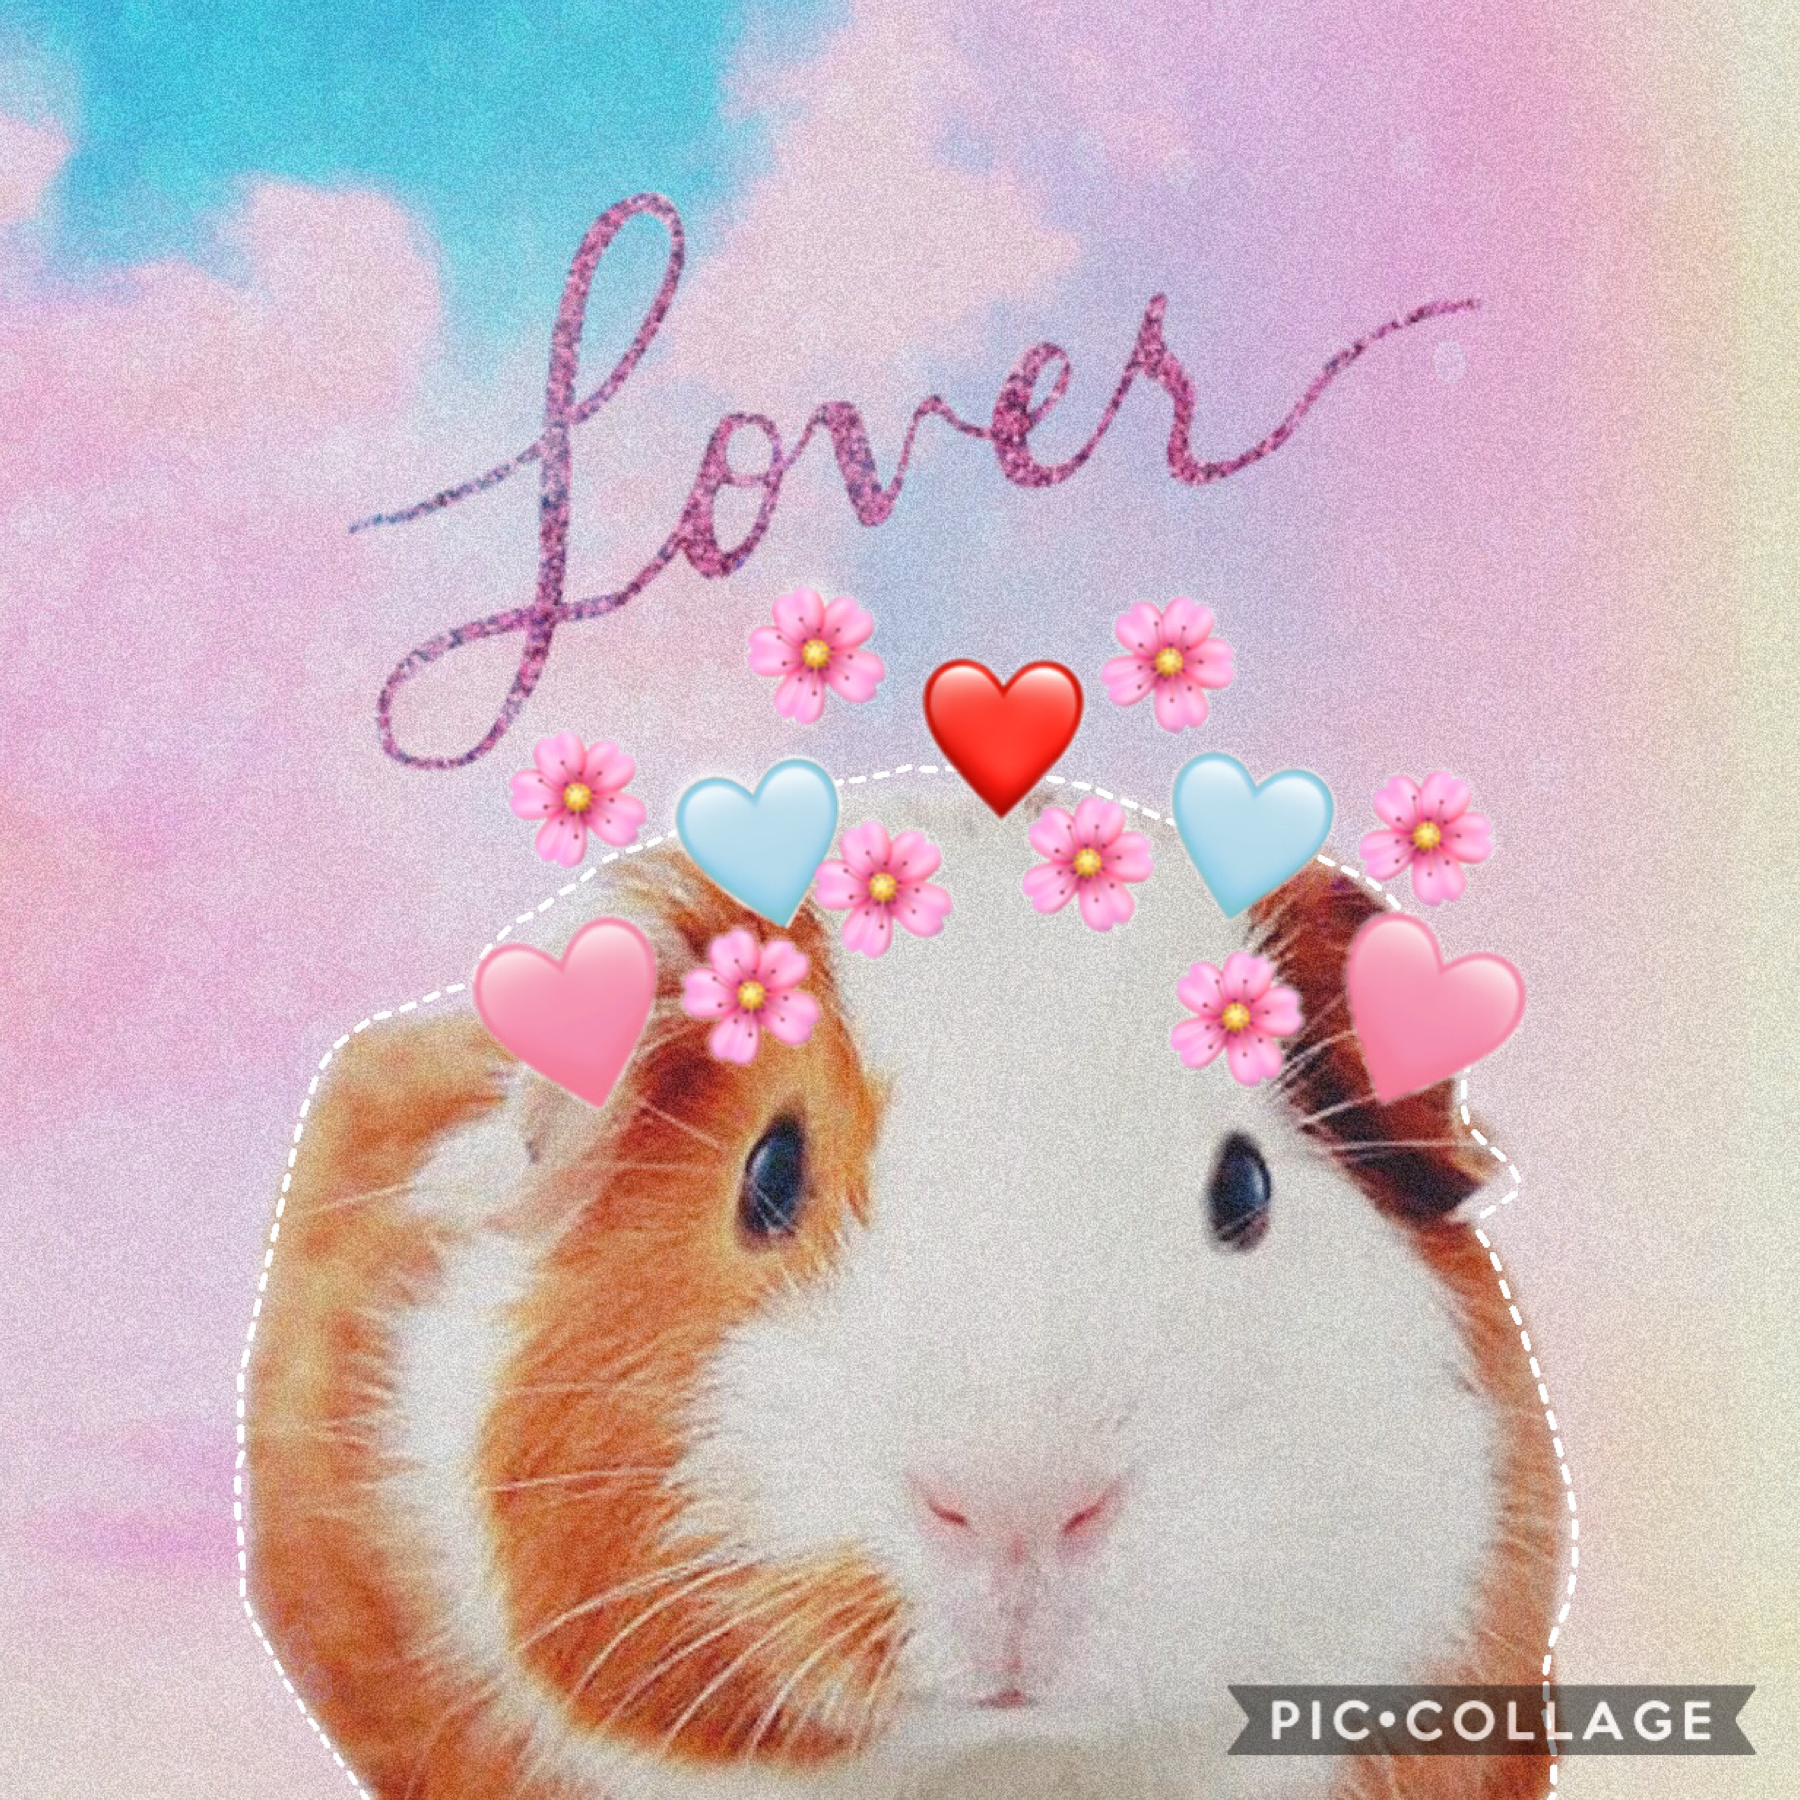 🥰 Thought this was cute 🥰